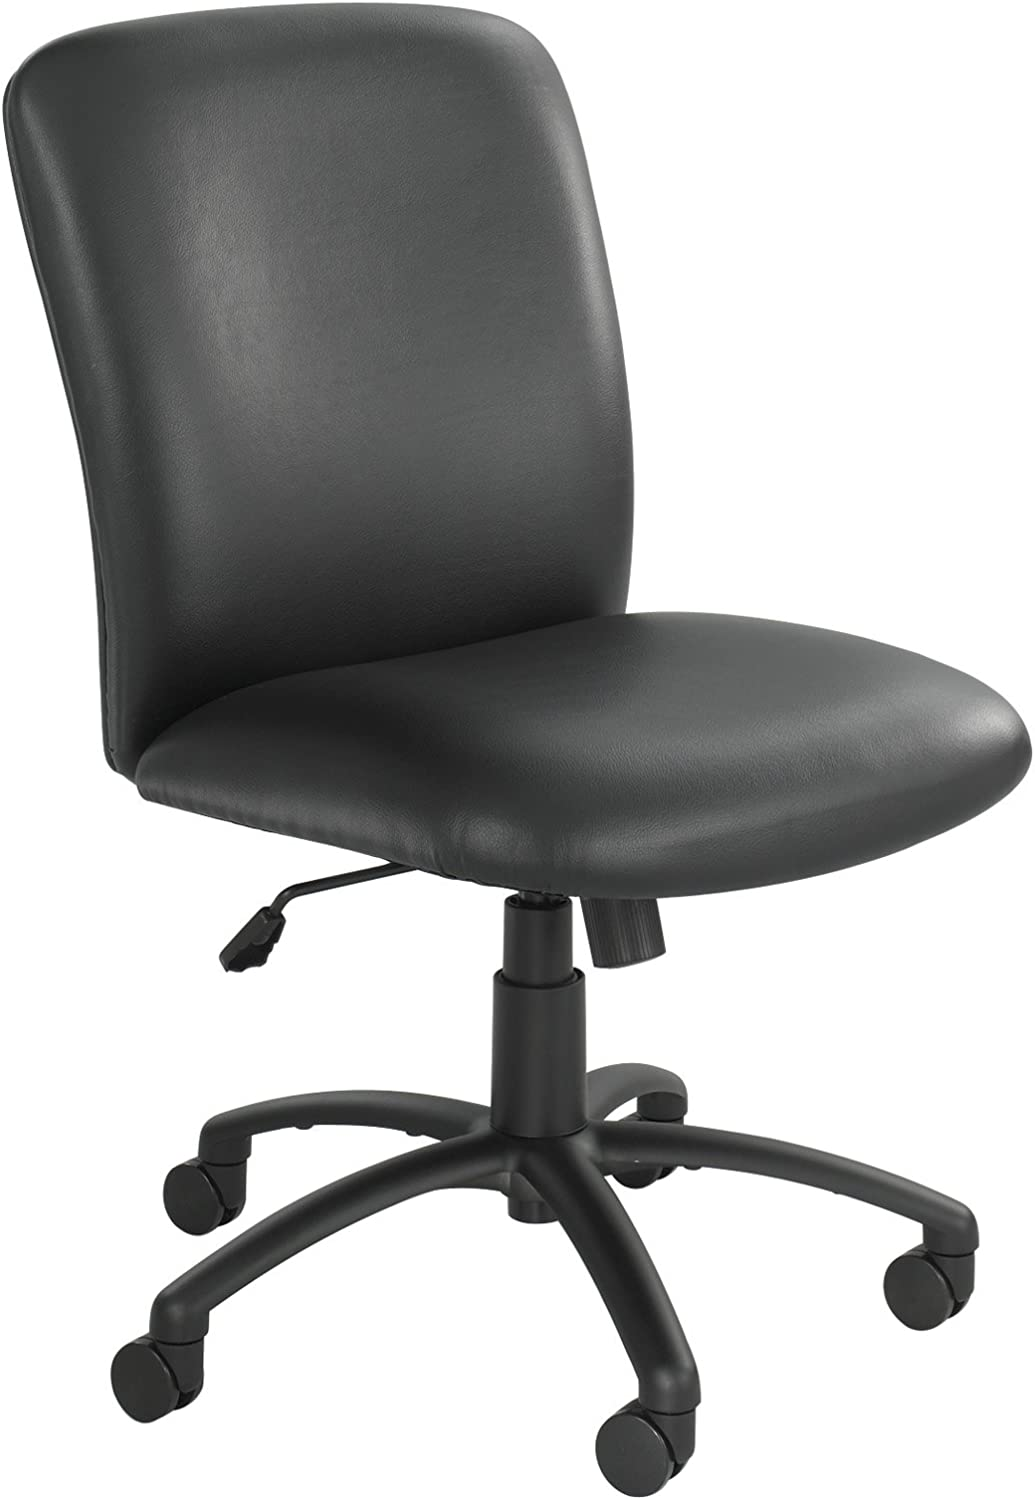 "Safco Products High Back Big and Tall Swivel Desk Task Office Chair, 27"" W x 30-1/4""D x 40-3/4-44-3/4"" H, 500 lbs. Weight Capacity, for Professional or Home, Black Vinyl"